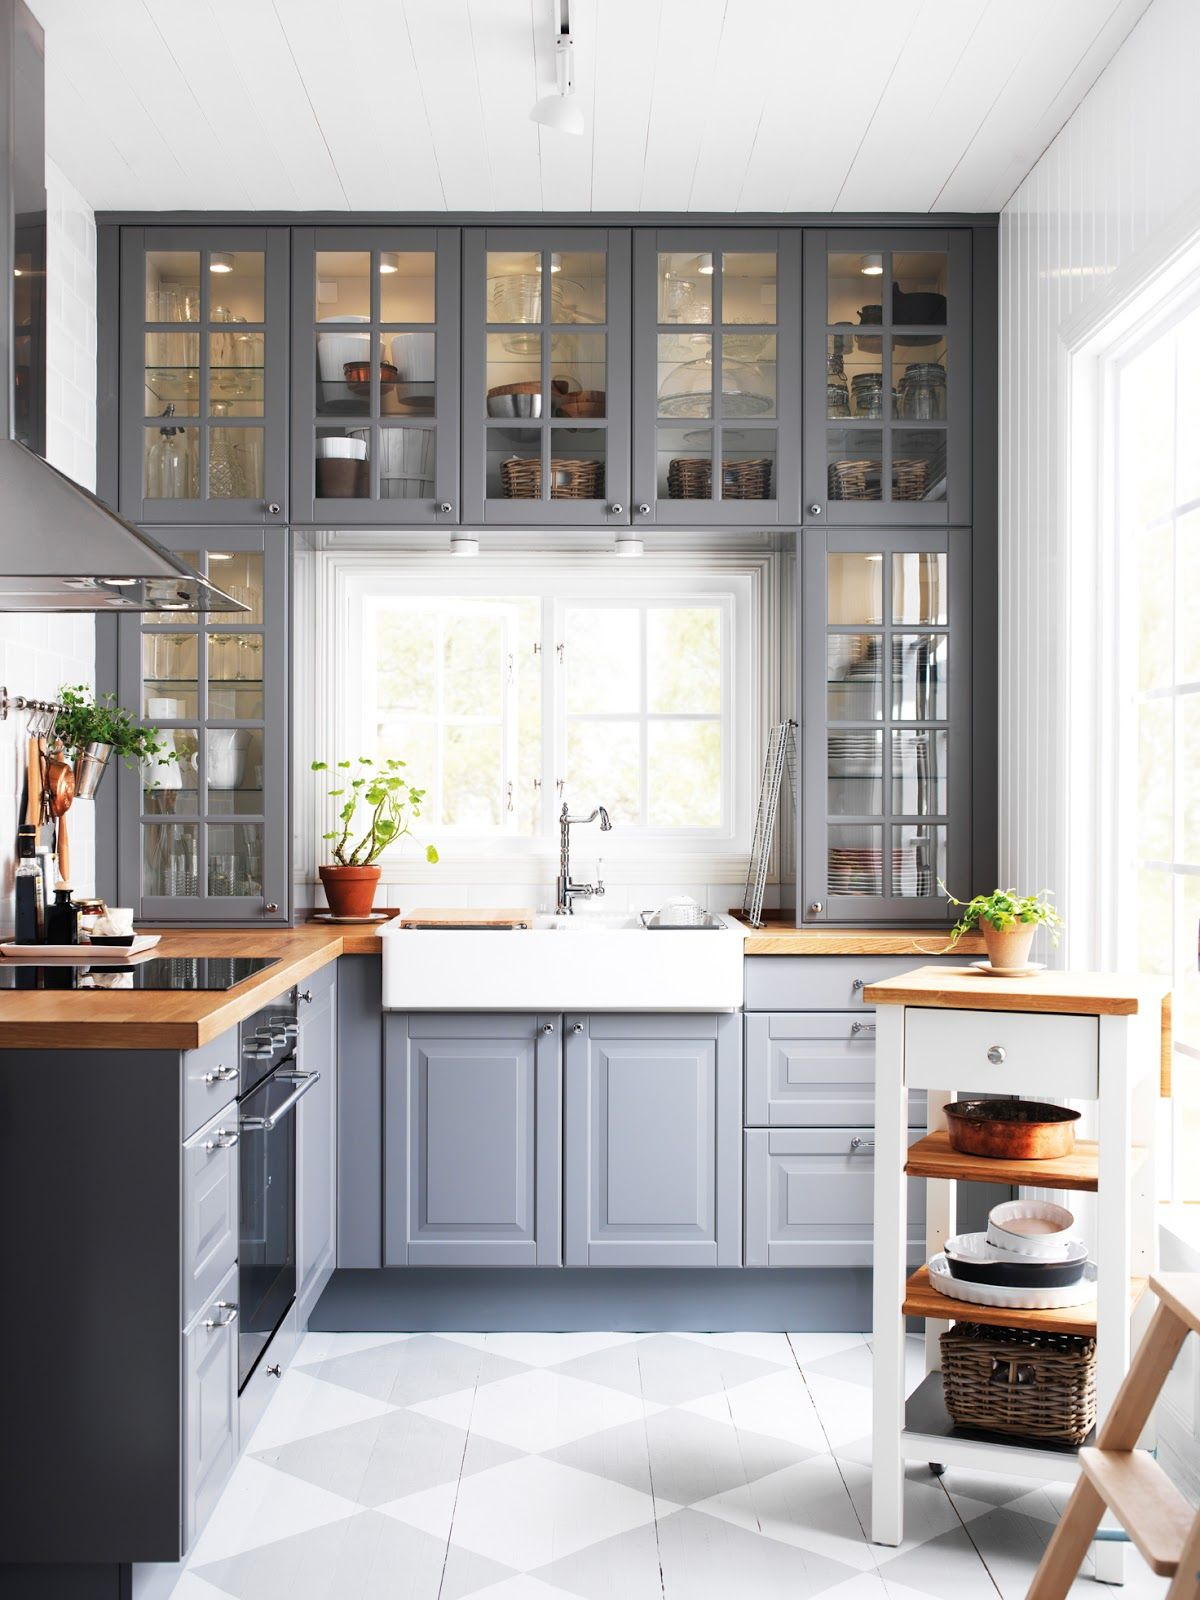 Cucina Ikea 2014 | Beautiful Cucine Moderne 2014 Photos ...